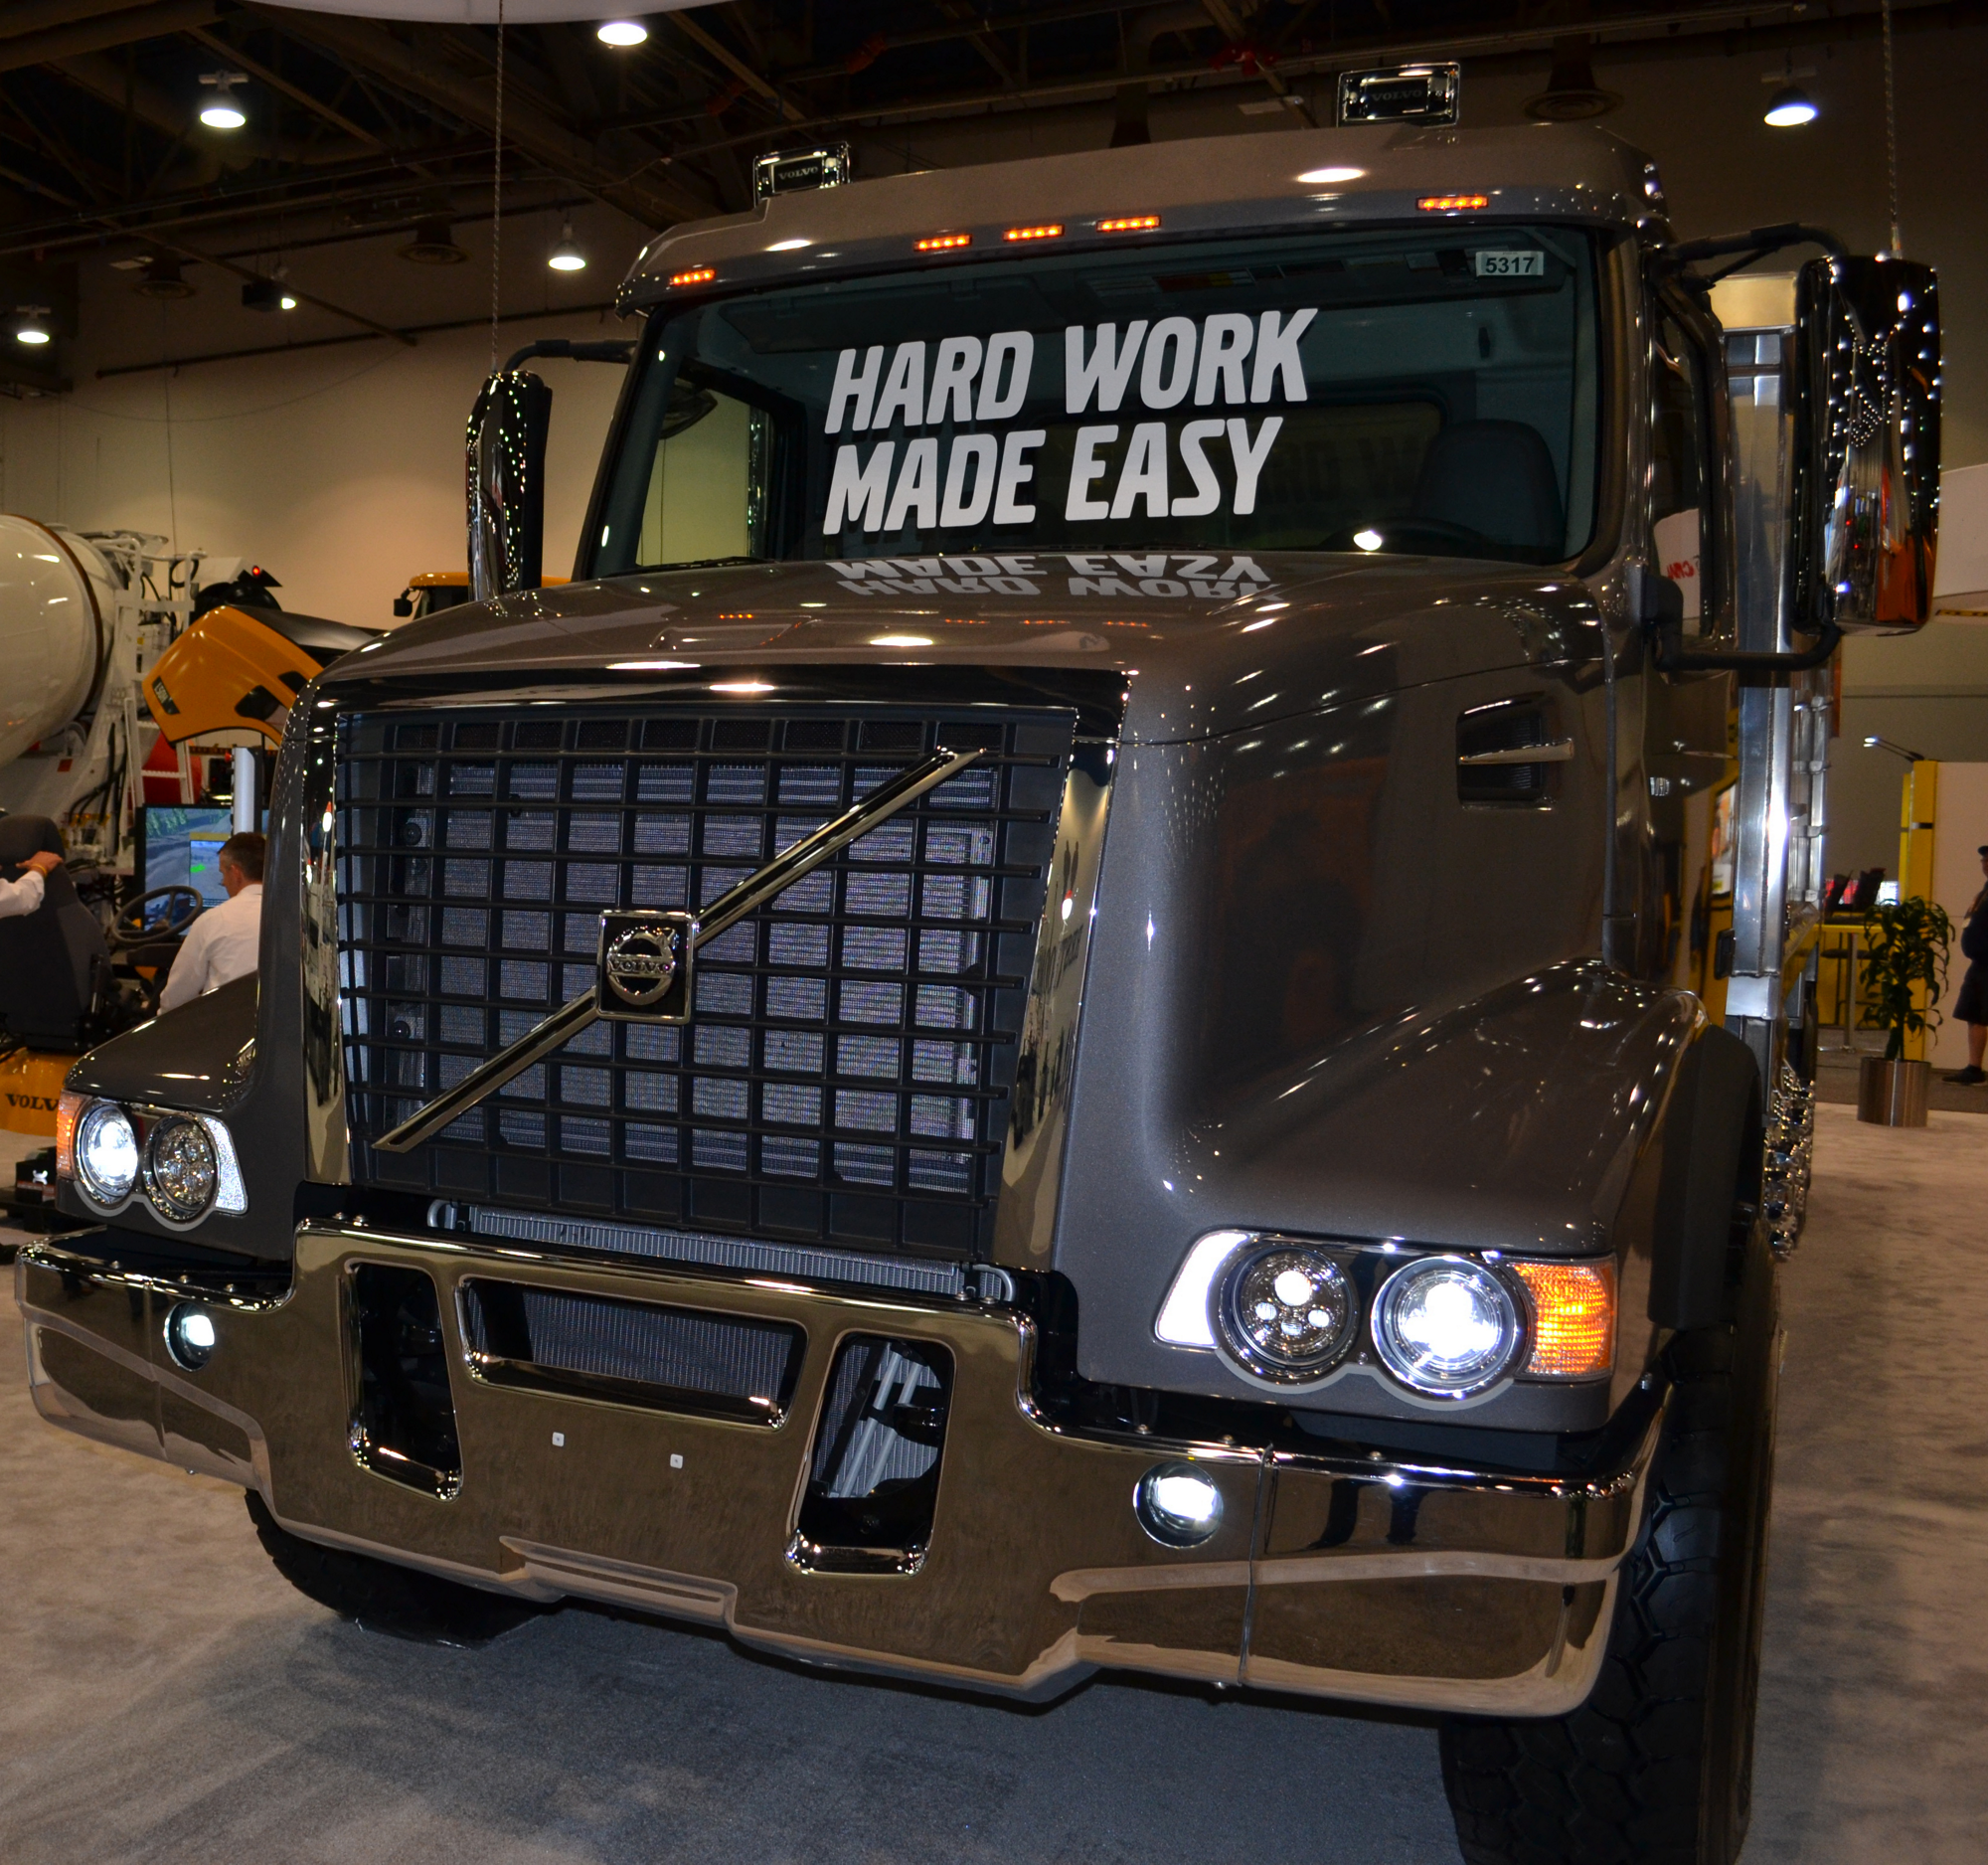 Volvo Trucks North America Debuted New Led Headlights For Vhd Series Vocational At World Of Concrete 2018